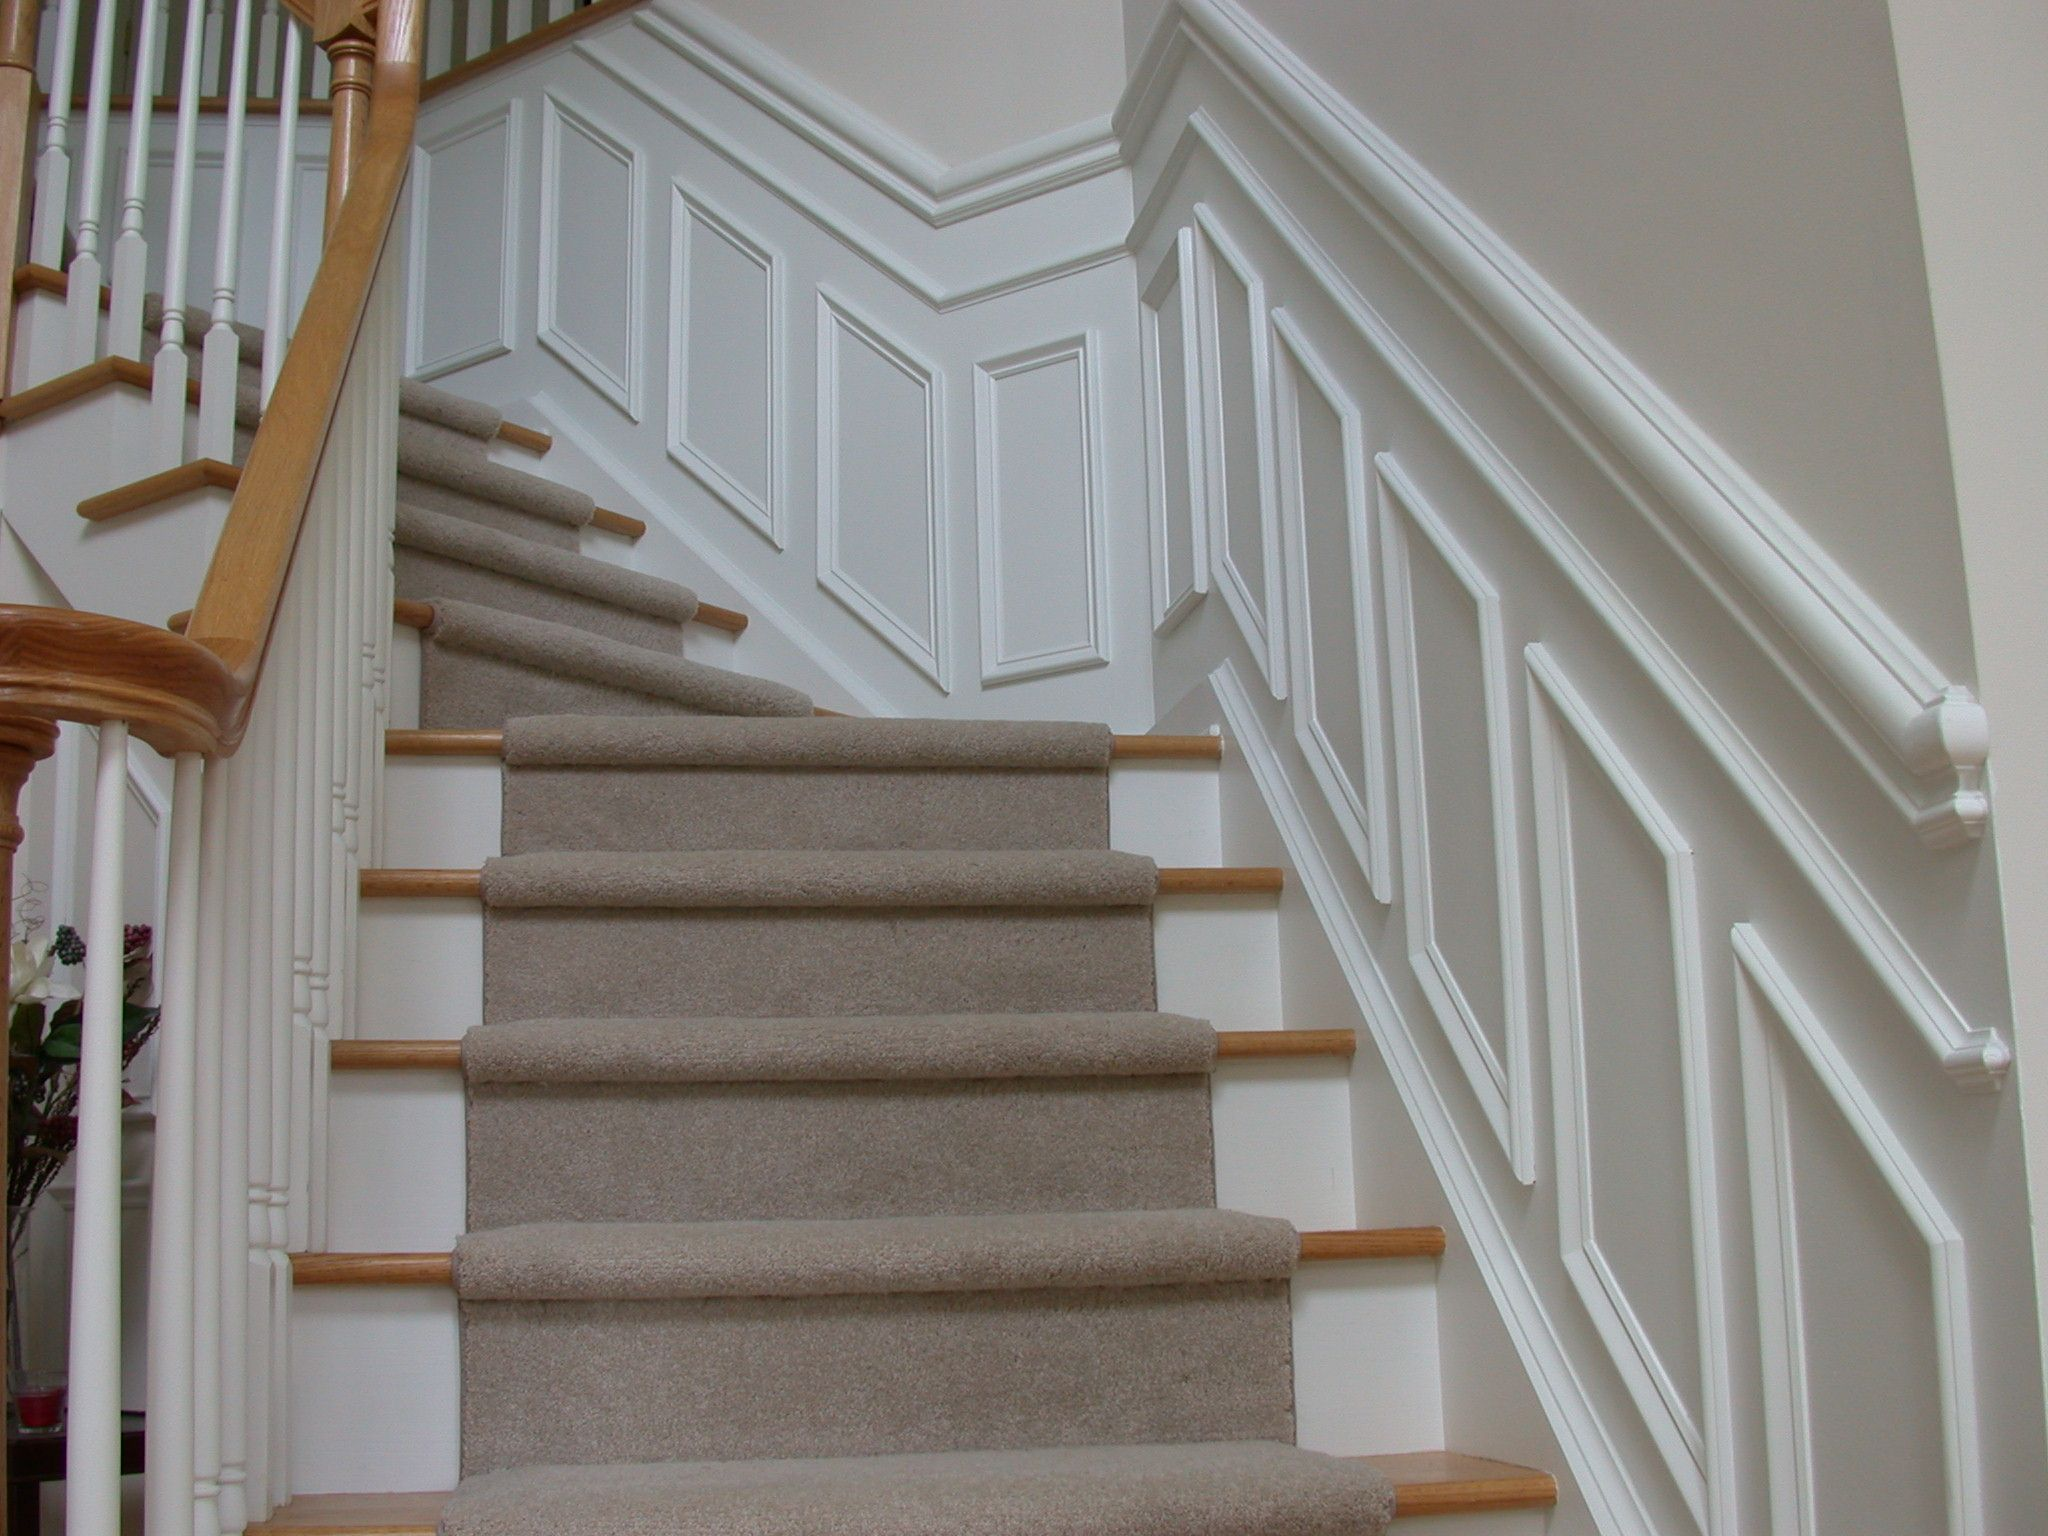 Molding amp trim find baseboard and crown molding designs online - Trex Trim Trim Molding Ideas Dream Builders Remodeling